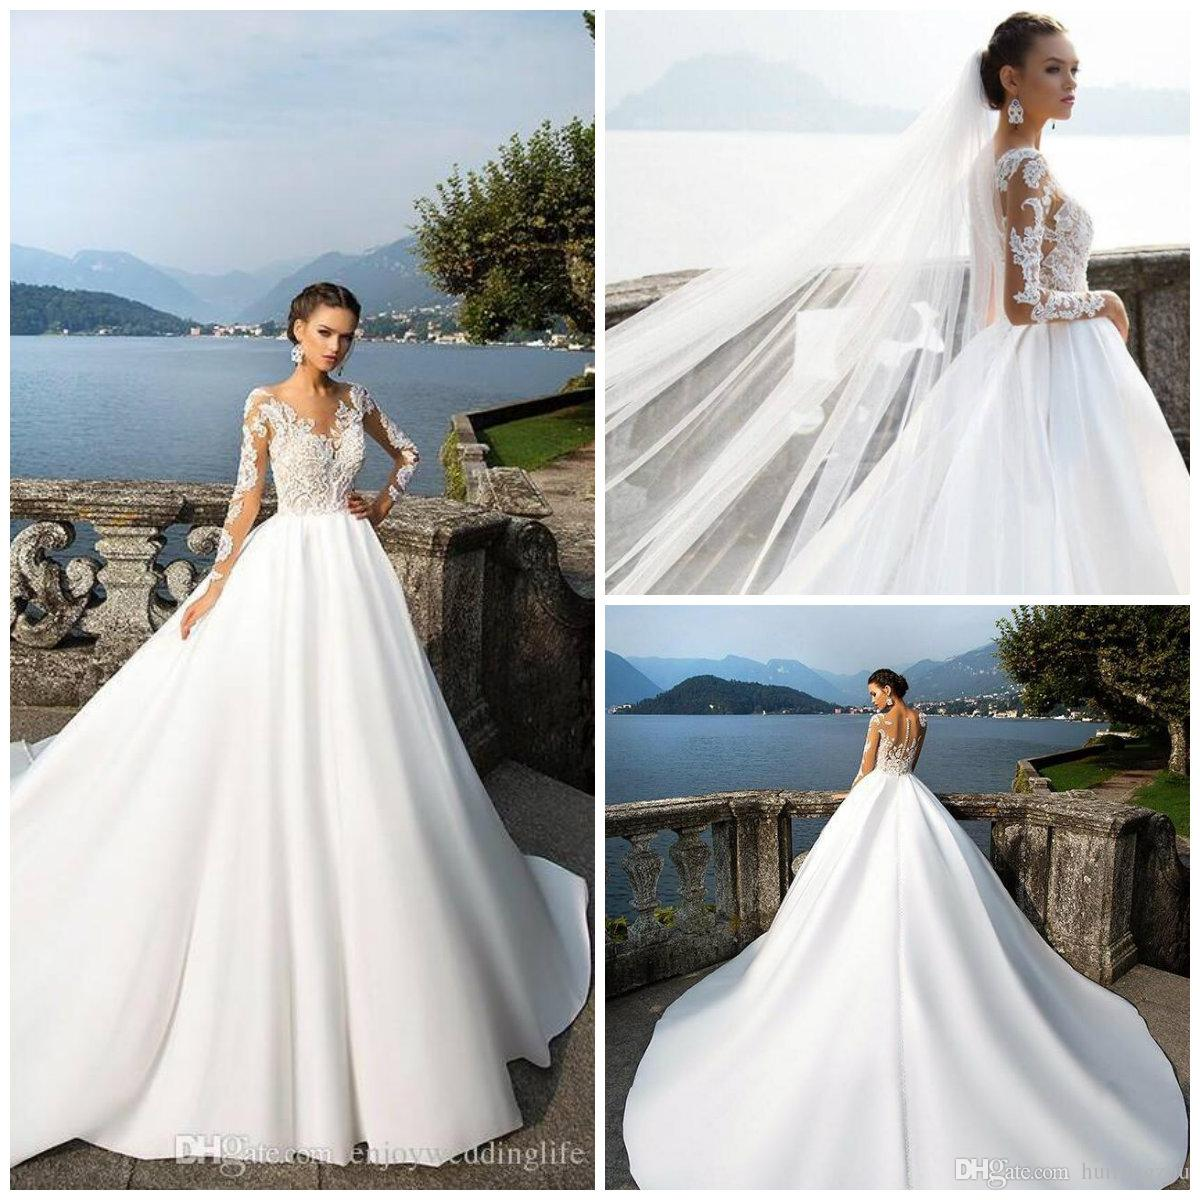 bd82885ca78 Discount 2018 Garden Wedding Dresses Long Sleeve Lace Applique Sweep Train  Bridal Gowns Custom Made Satin Wedding Dress Lace Wedding Gown Mermaid  Wedding ...